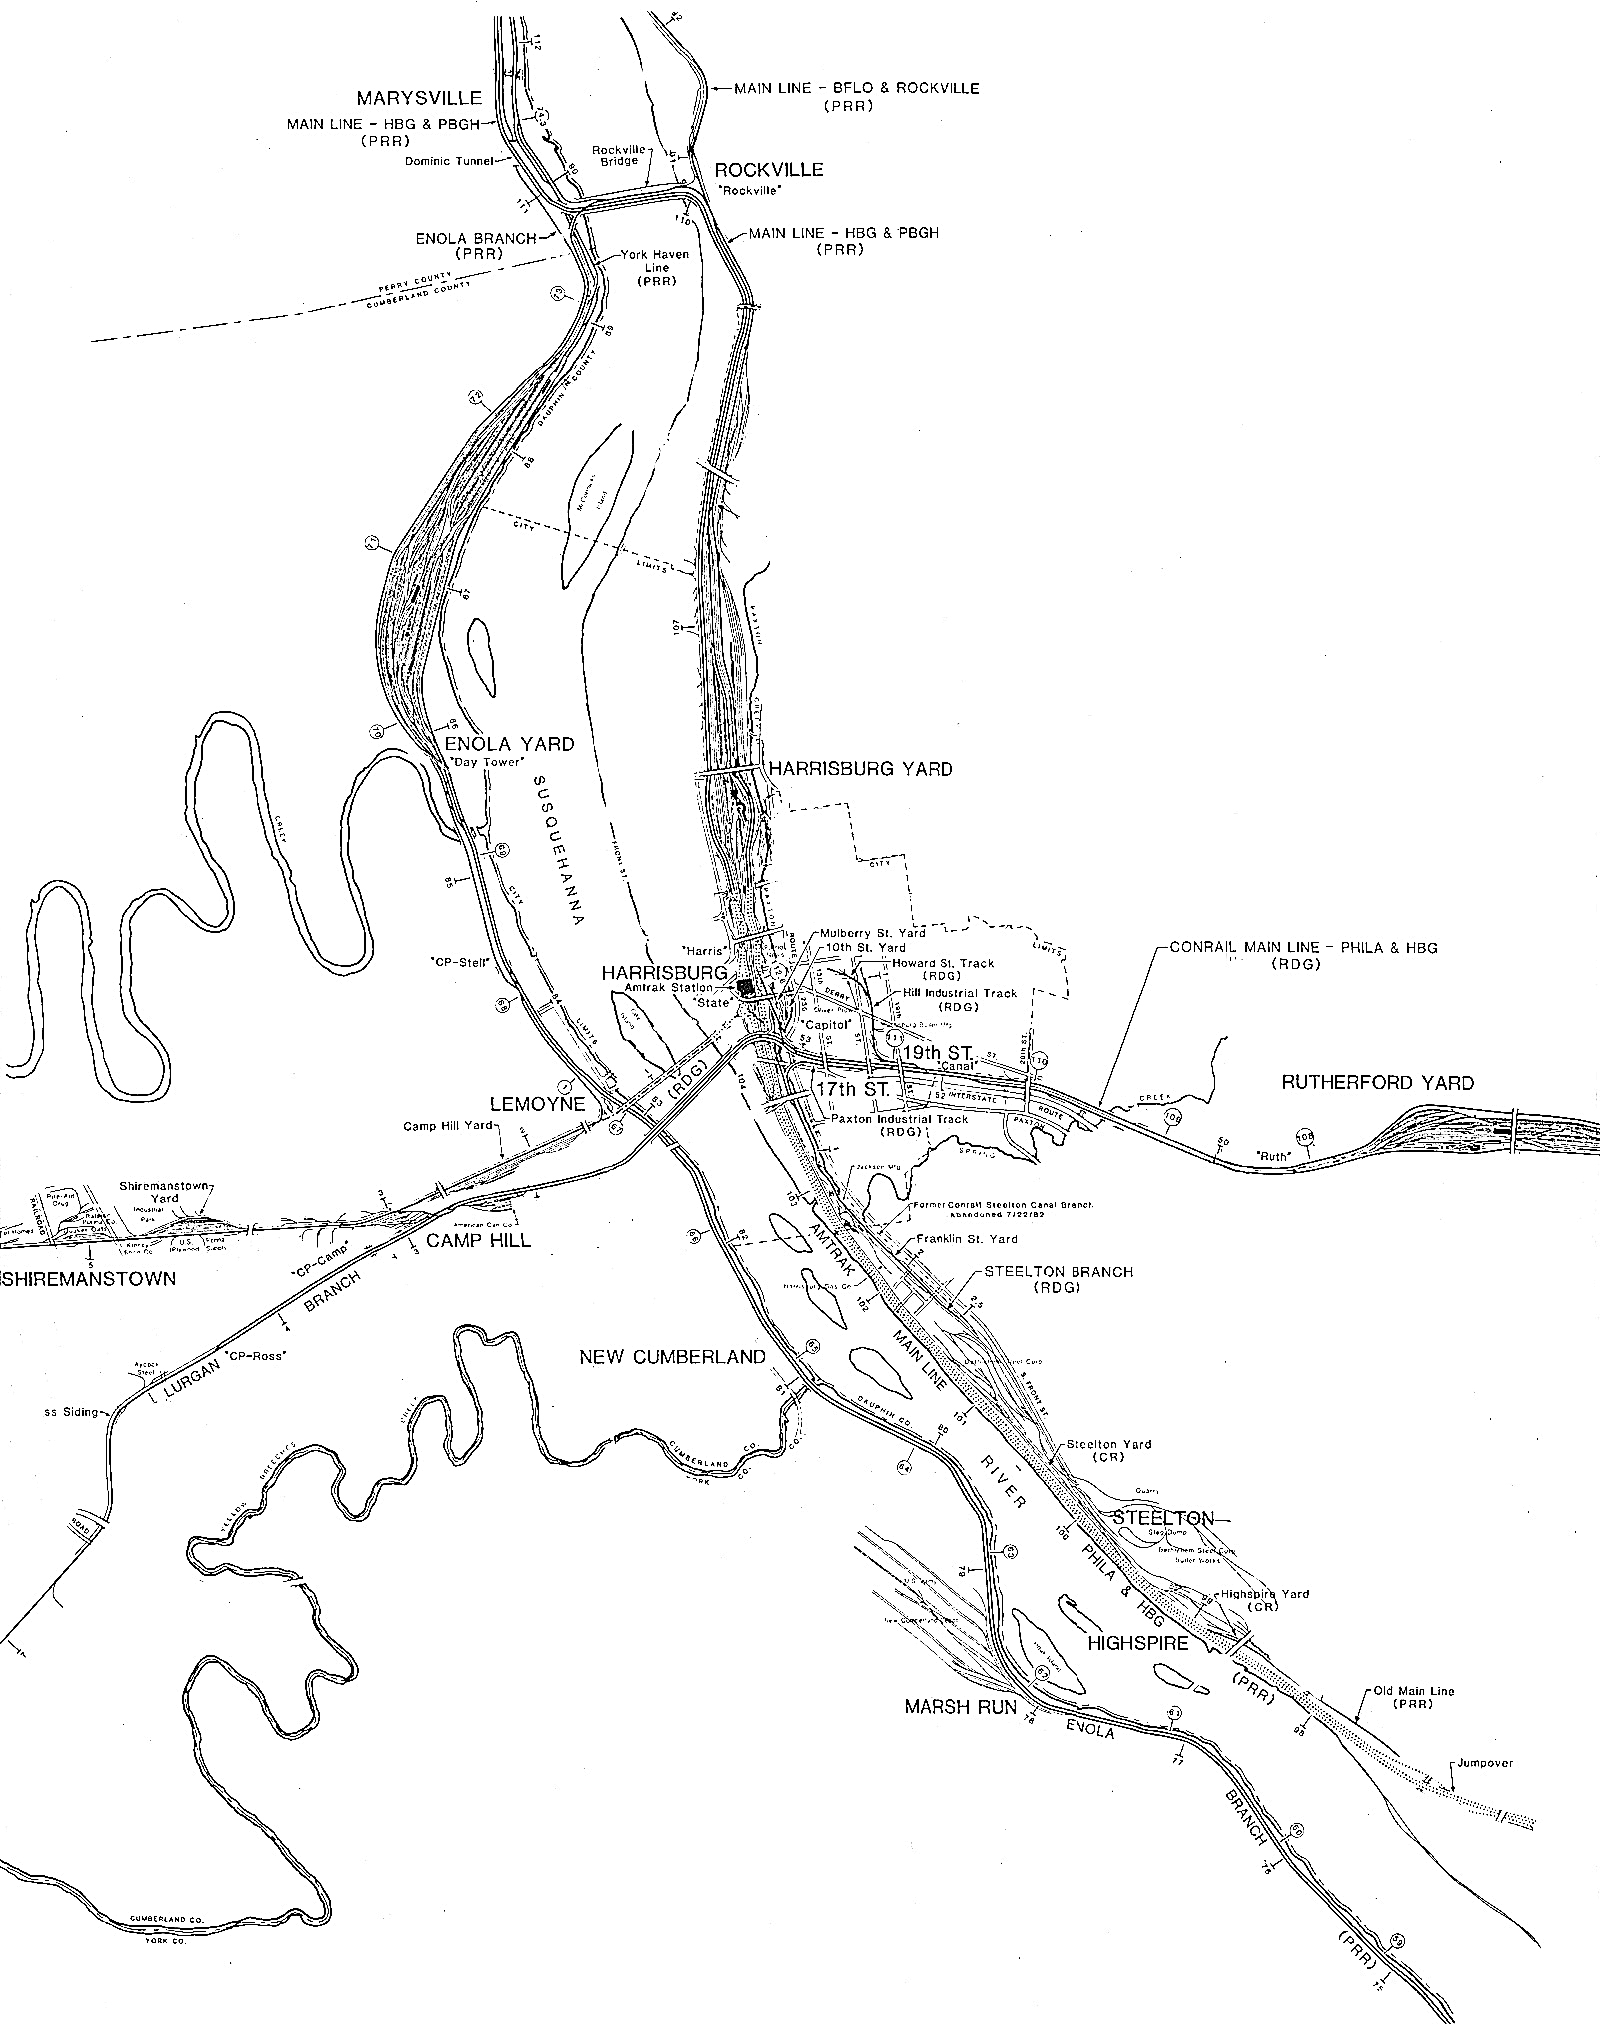 Conrail map of the Harrisburg Terminal Area circa 1984. In the map it becomes evident how the PRR dominated the area over the Reading Company, which is represented by the line starting at Rutherford Yard and heading straight across(left to right) to the Lurgan Sub. This line today is what funnels Norfolk Southern traffic from the East. Amtrak lines are represented in dotted lines moving from Harrisburg proper to the South East (bottom right). Note all predecessor line are noted in parentheses.